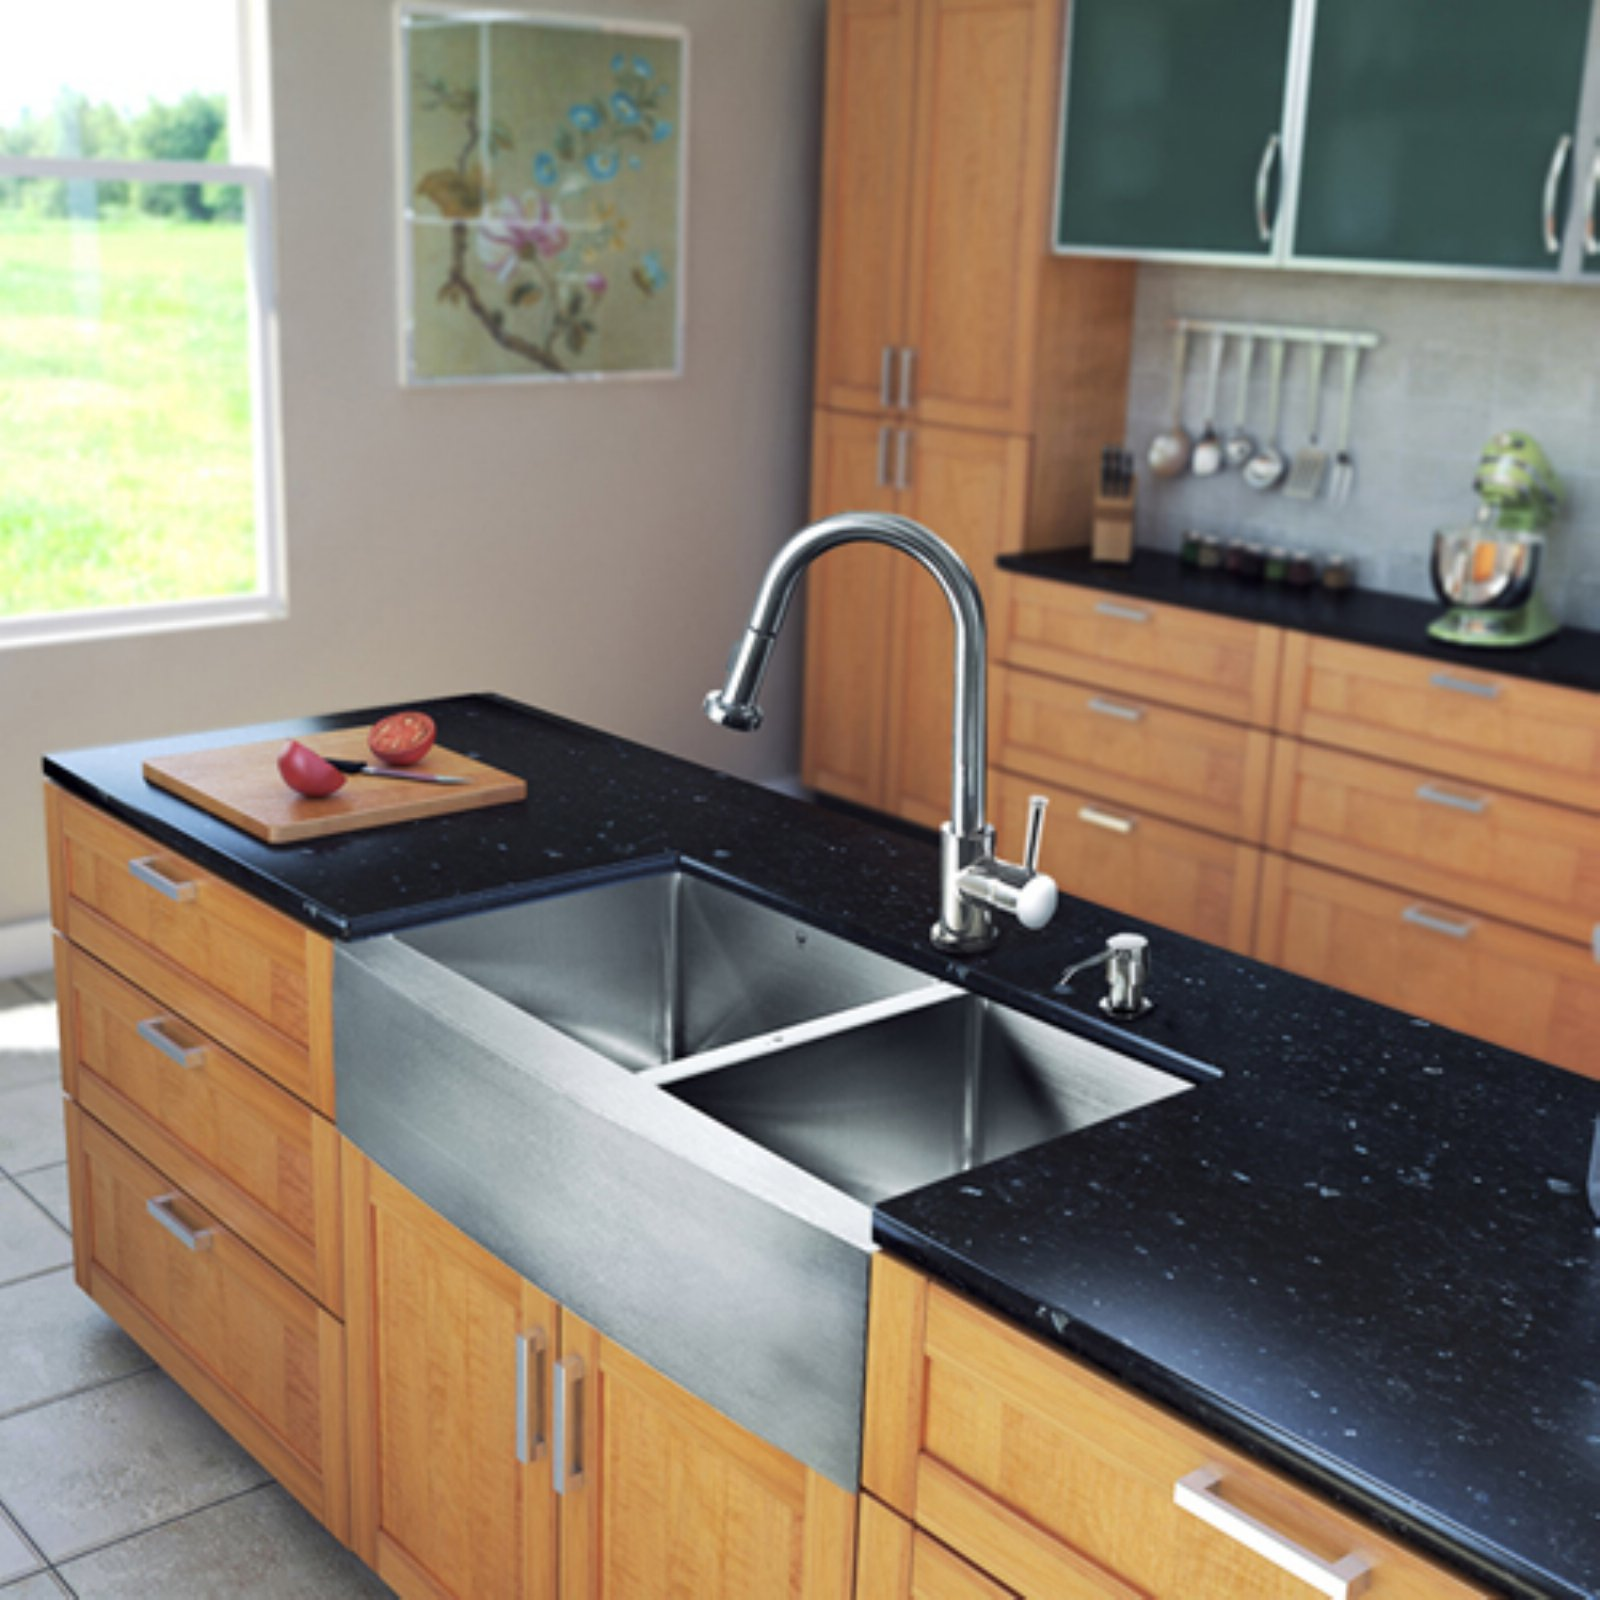 "Vigo All-in-One 33"" Farmhouse Stainless Steel Double Bowl Kitchen Sink and Chrome Faucet Set"